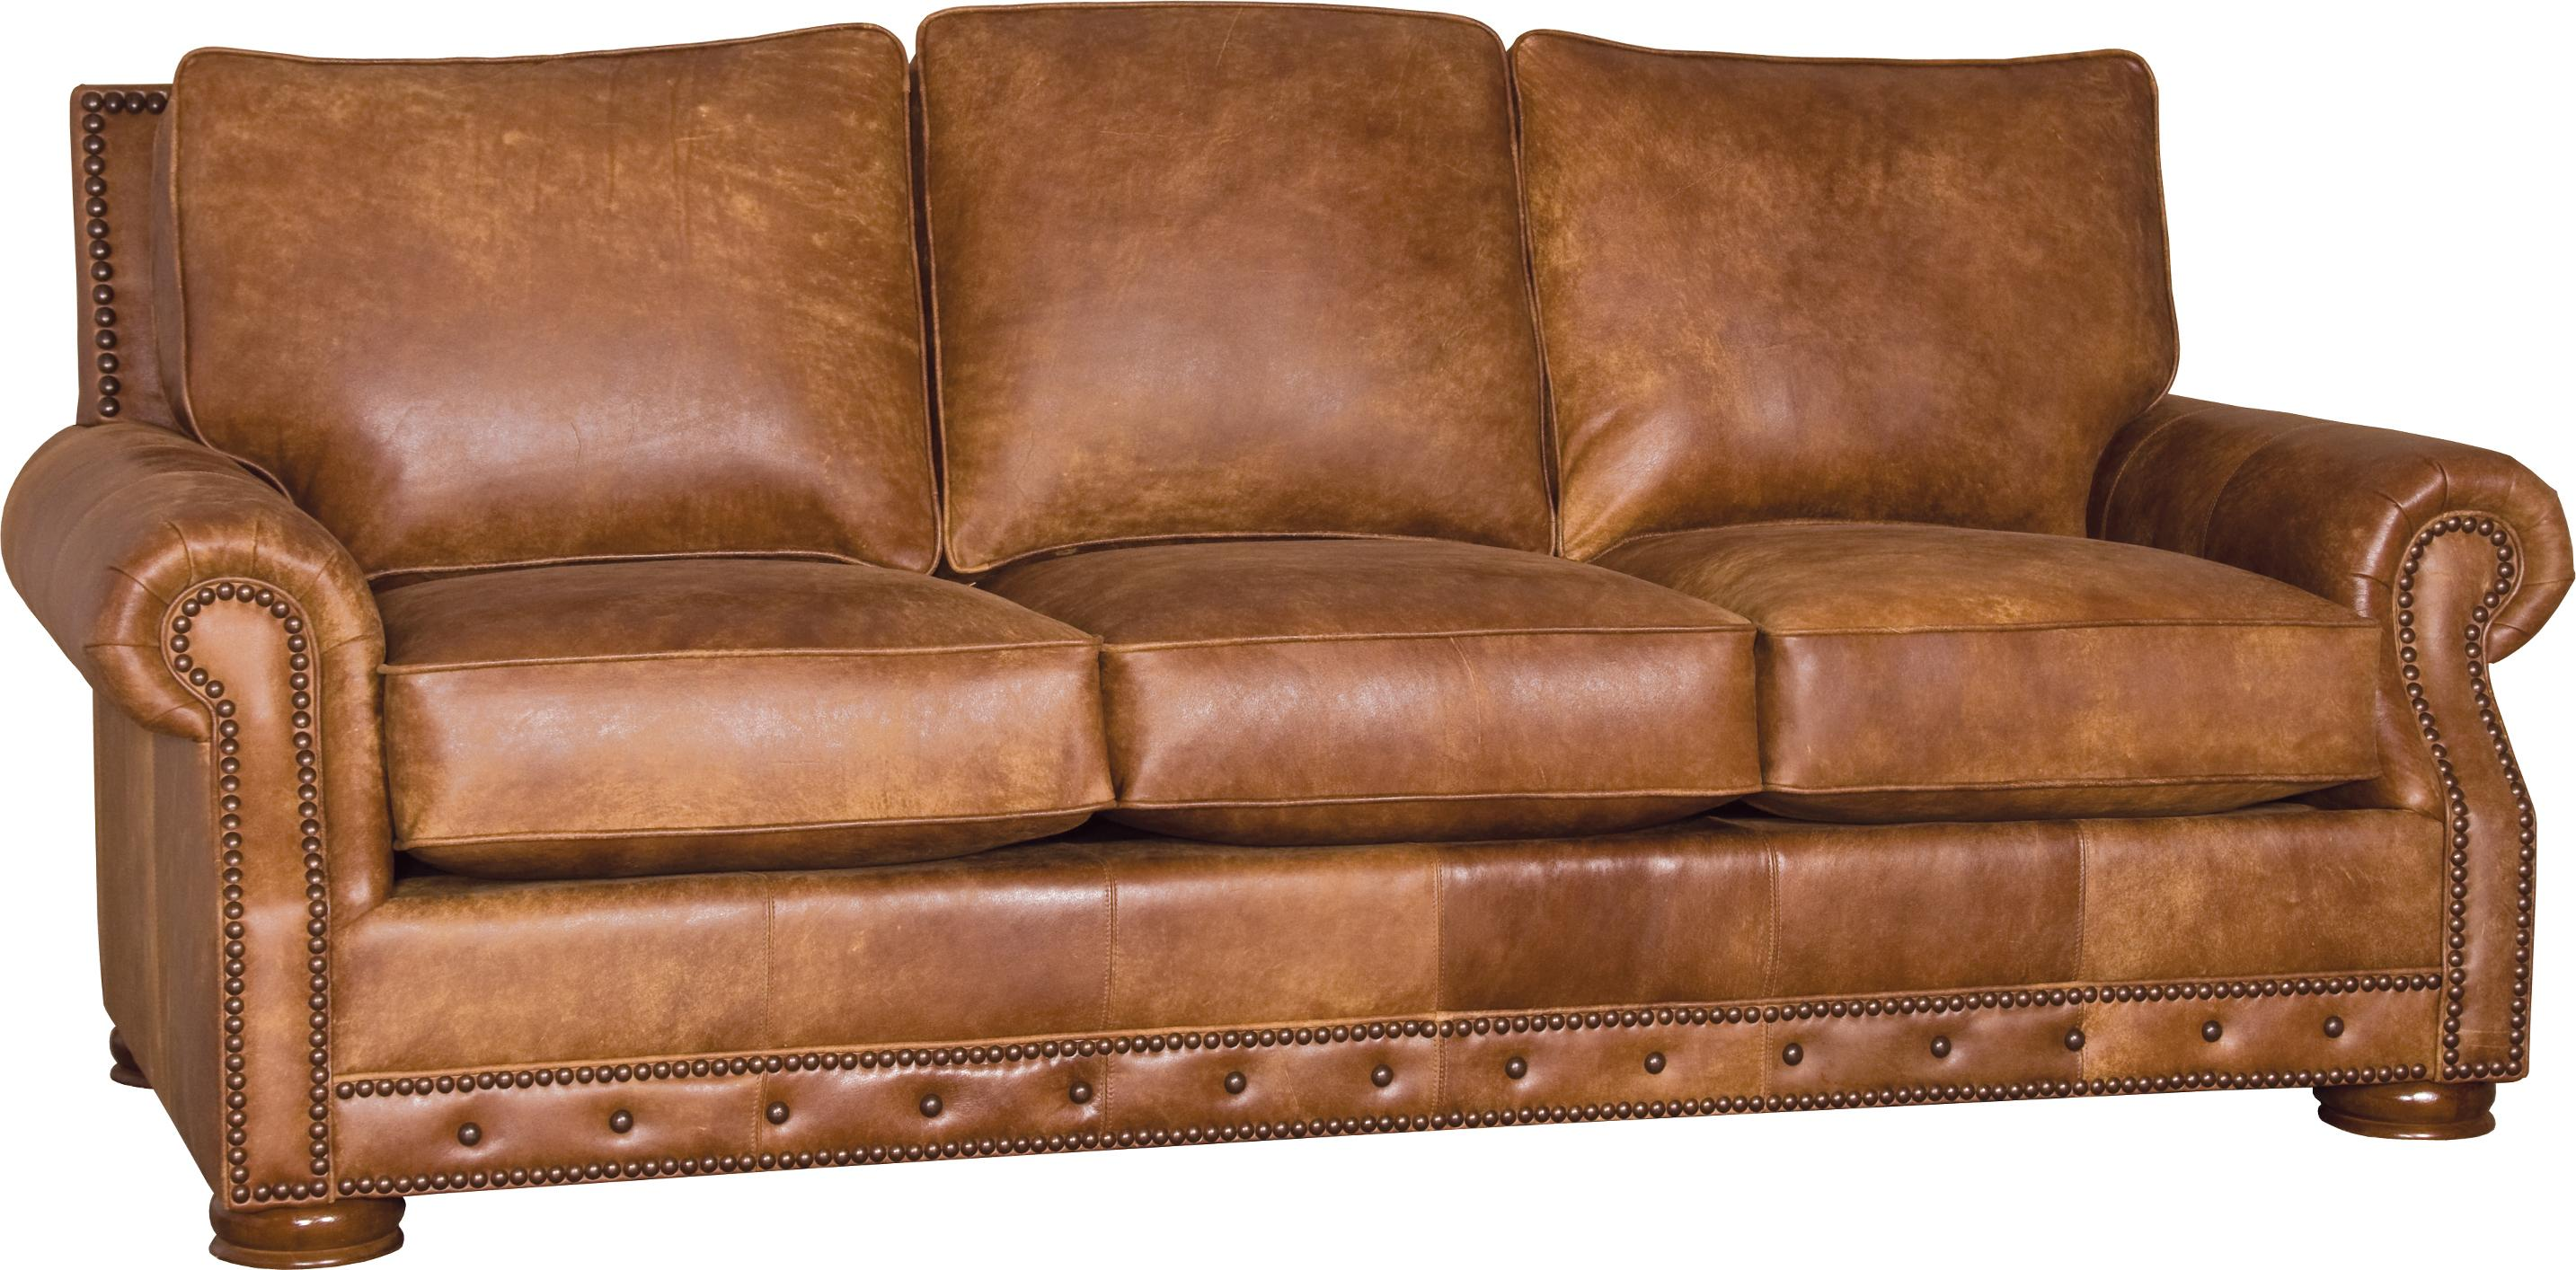 290 Traditional Sofa by Mayo at Wilson's Furniture